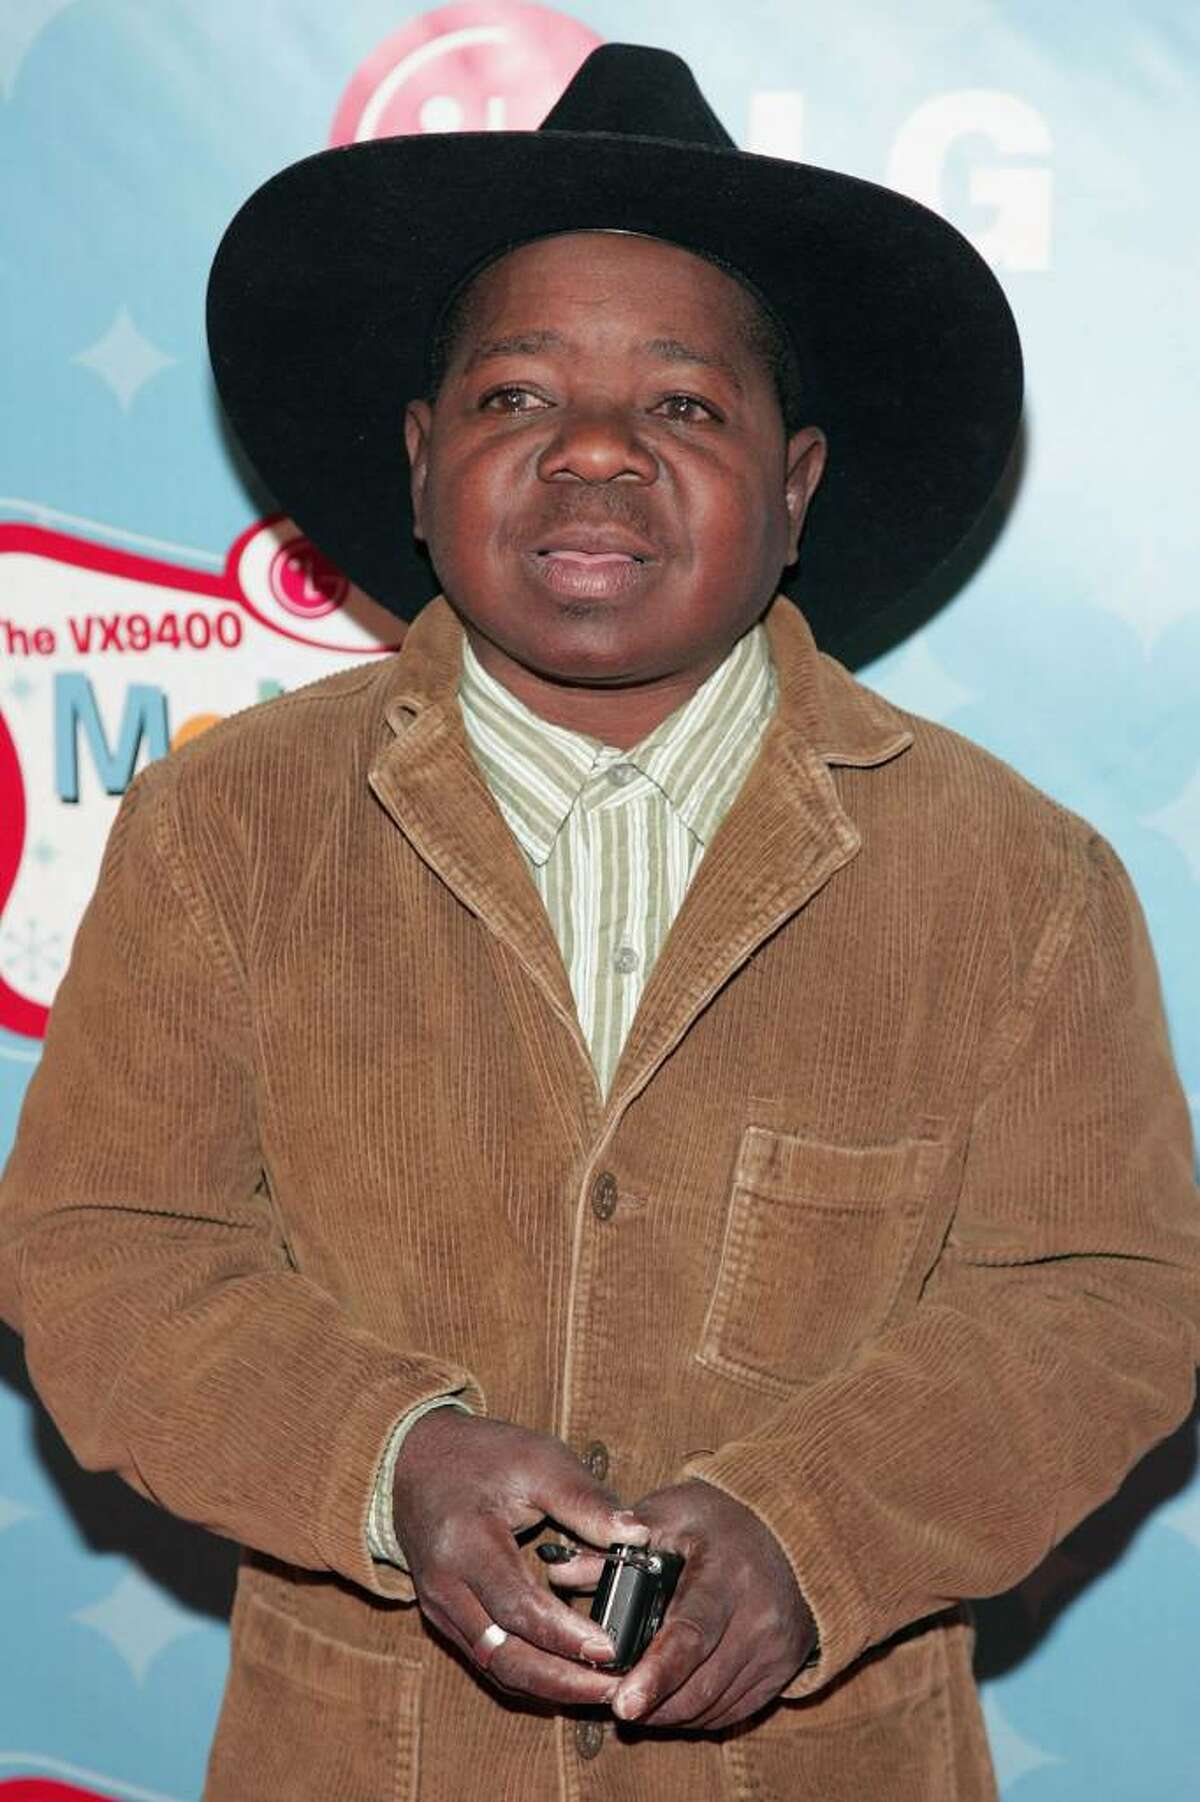 LOS ANGELES, CA - JUNE 19: Actor Gary Coleman arrives at the LG's Mobile TV Party held at Paramount Studios on June 19,2007 in Los Angeles, California. (Photo by Frazer Harrison/Getty Images) *** Local Caption *** Gary Coleman